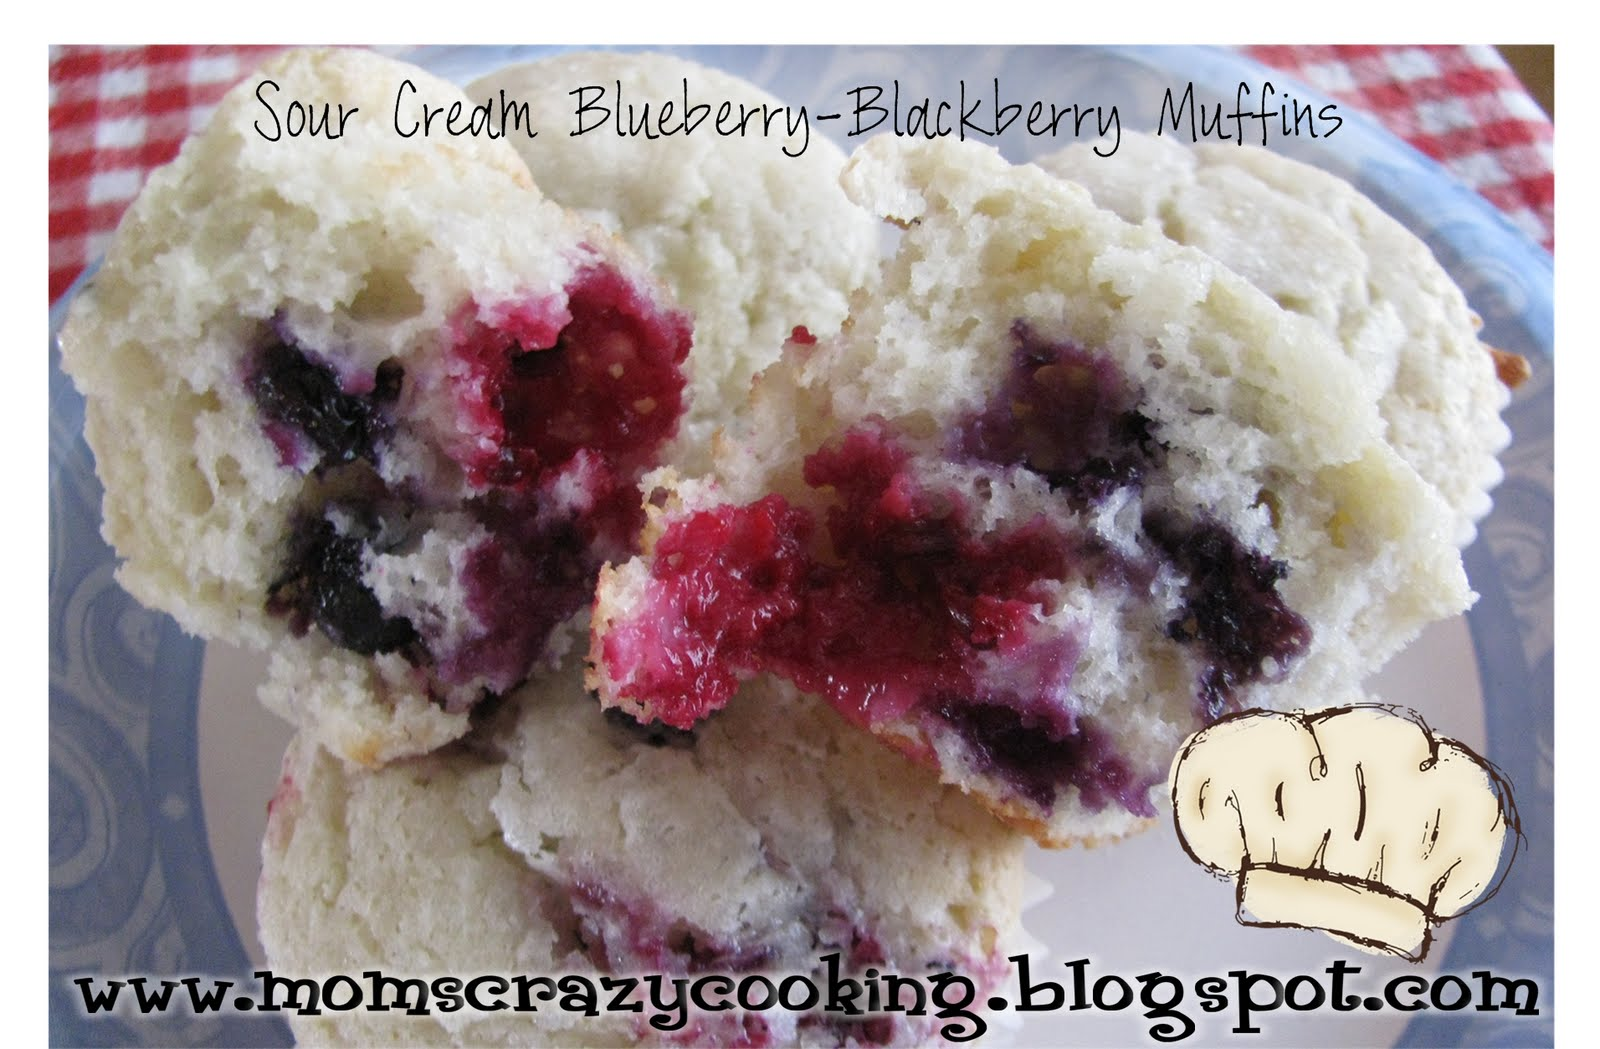 MOMS CRAZY COOKING: Sour Cream Blueberry-Blackberry Muffins